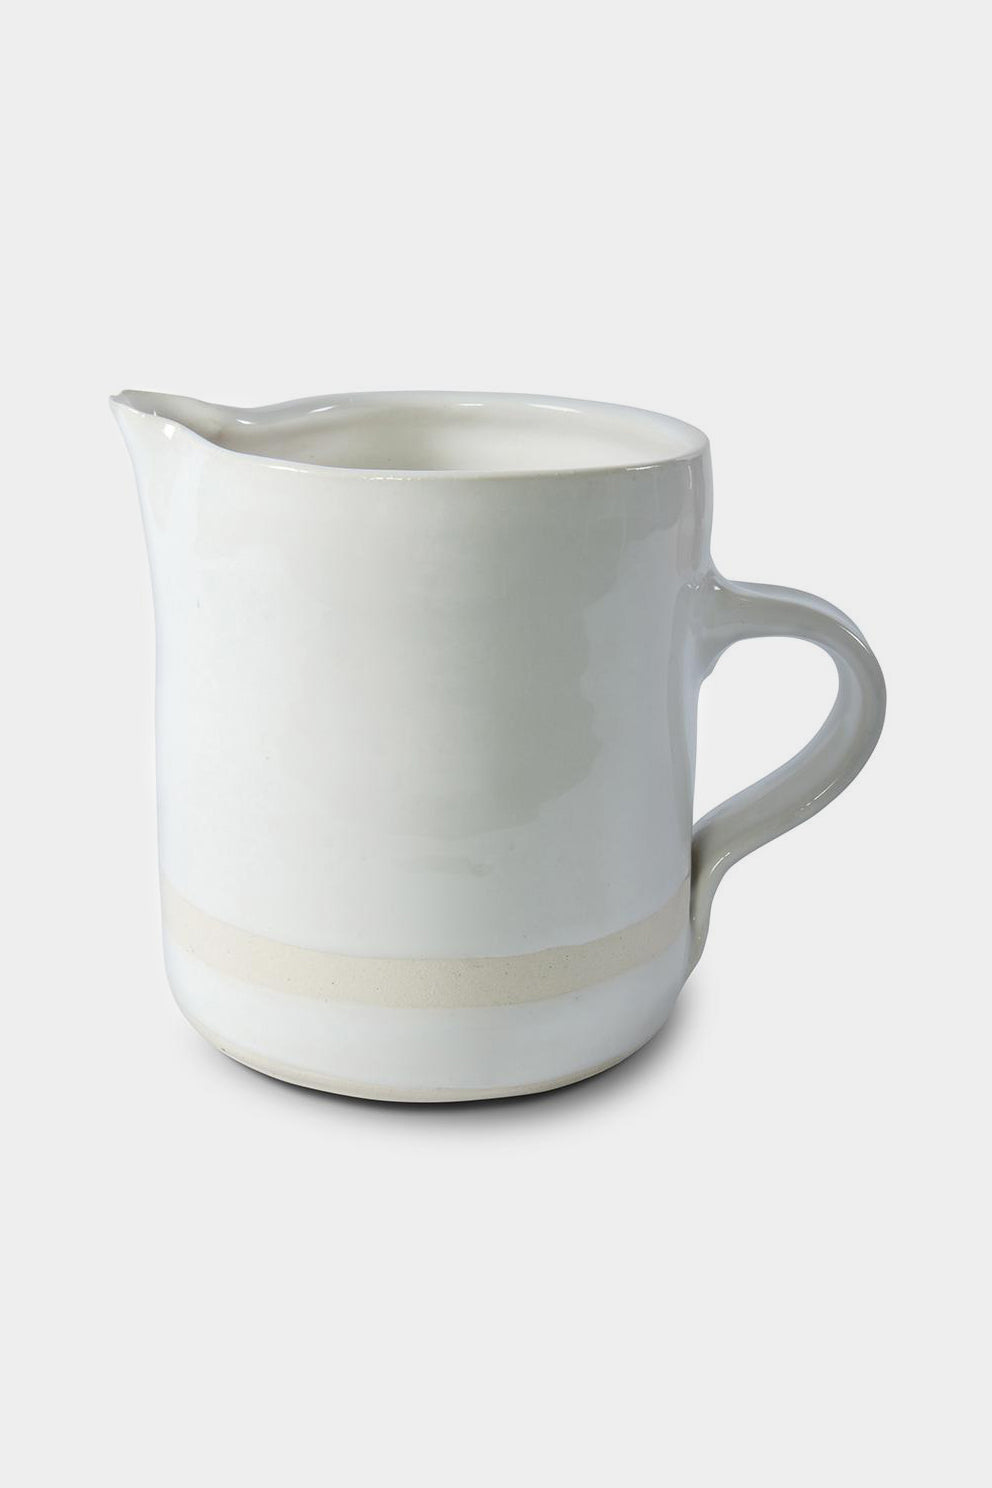 whitesands water jug 1.5l